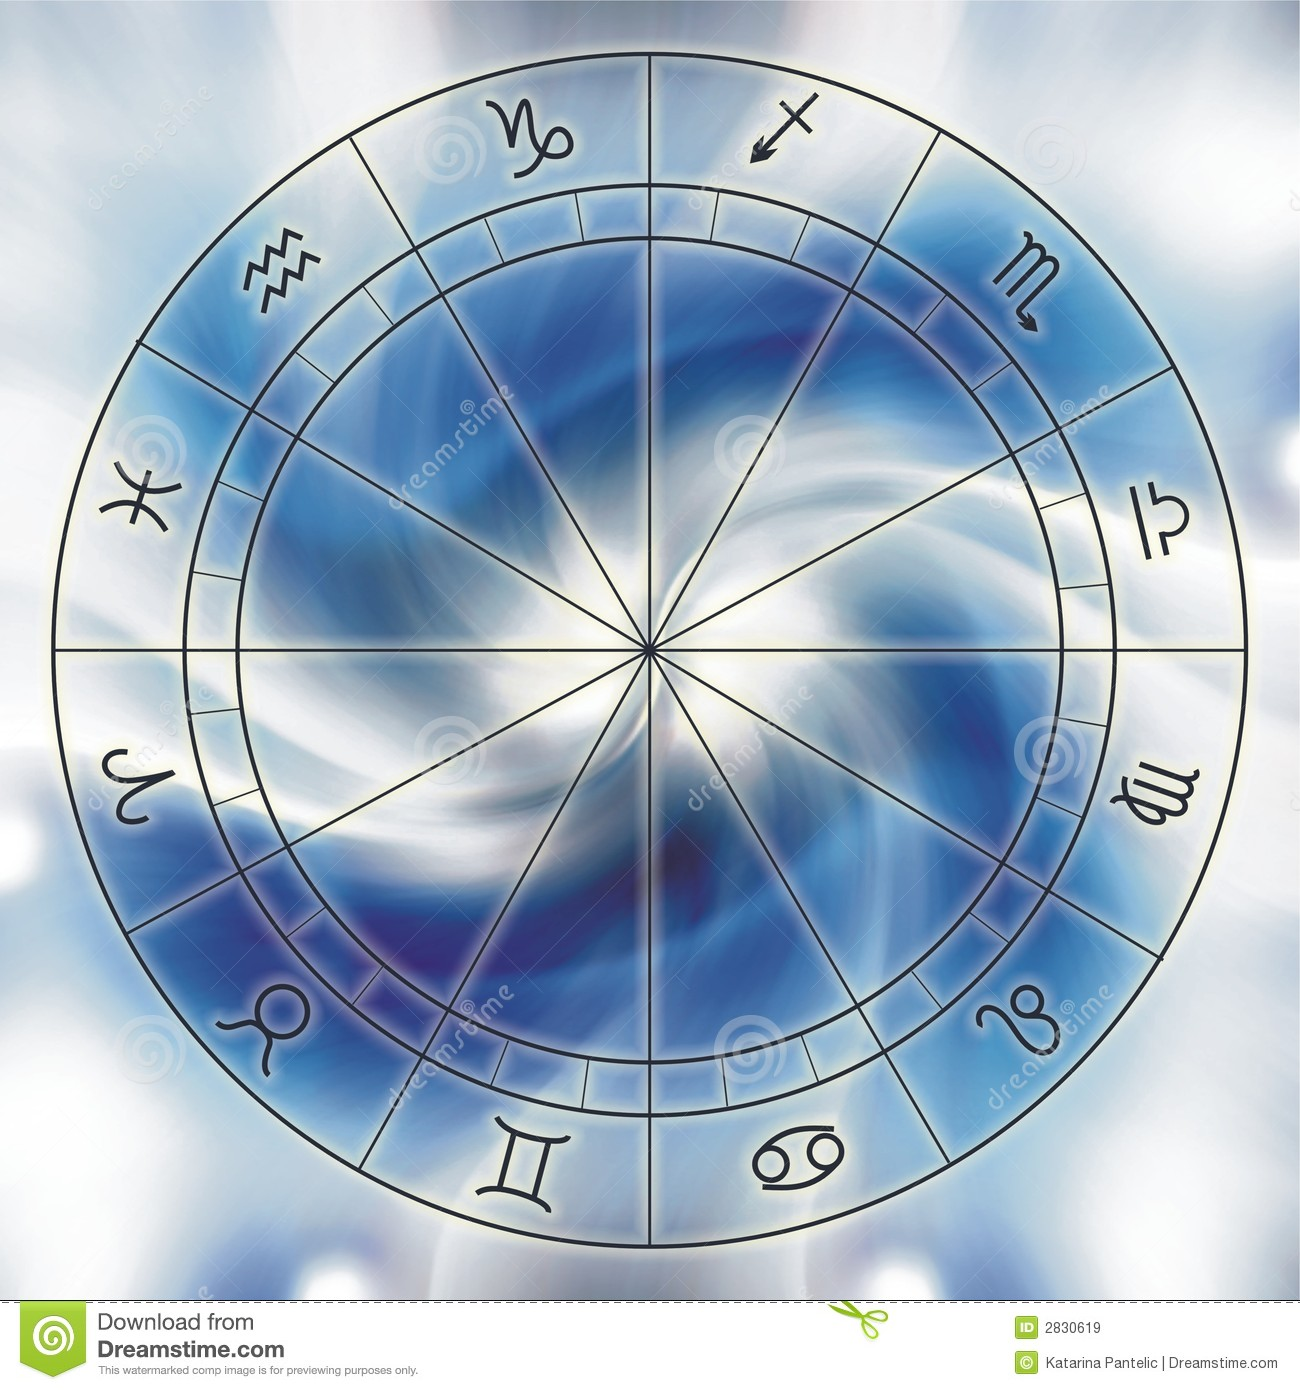 zodiac chart royalty free stock images image 2830619